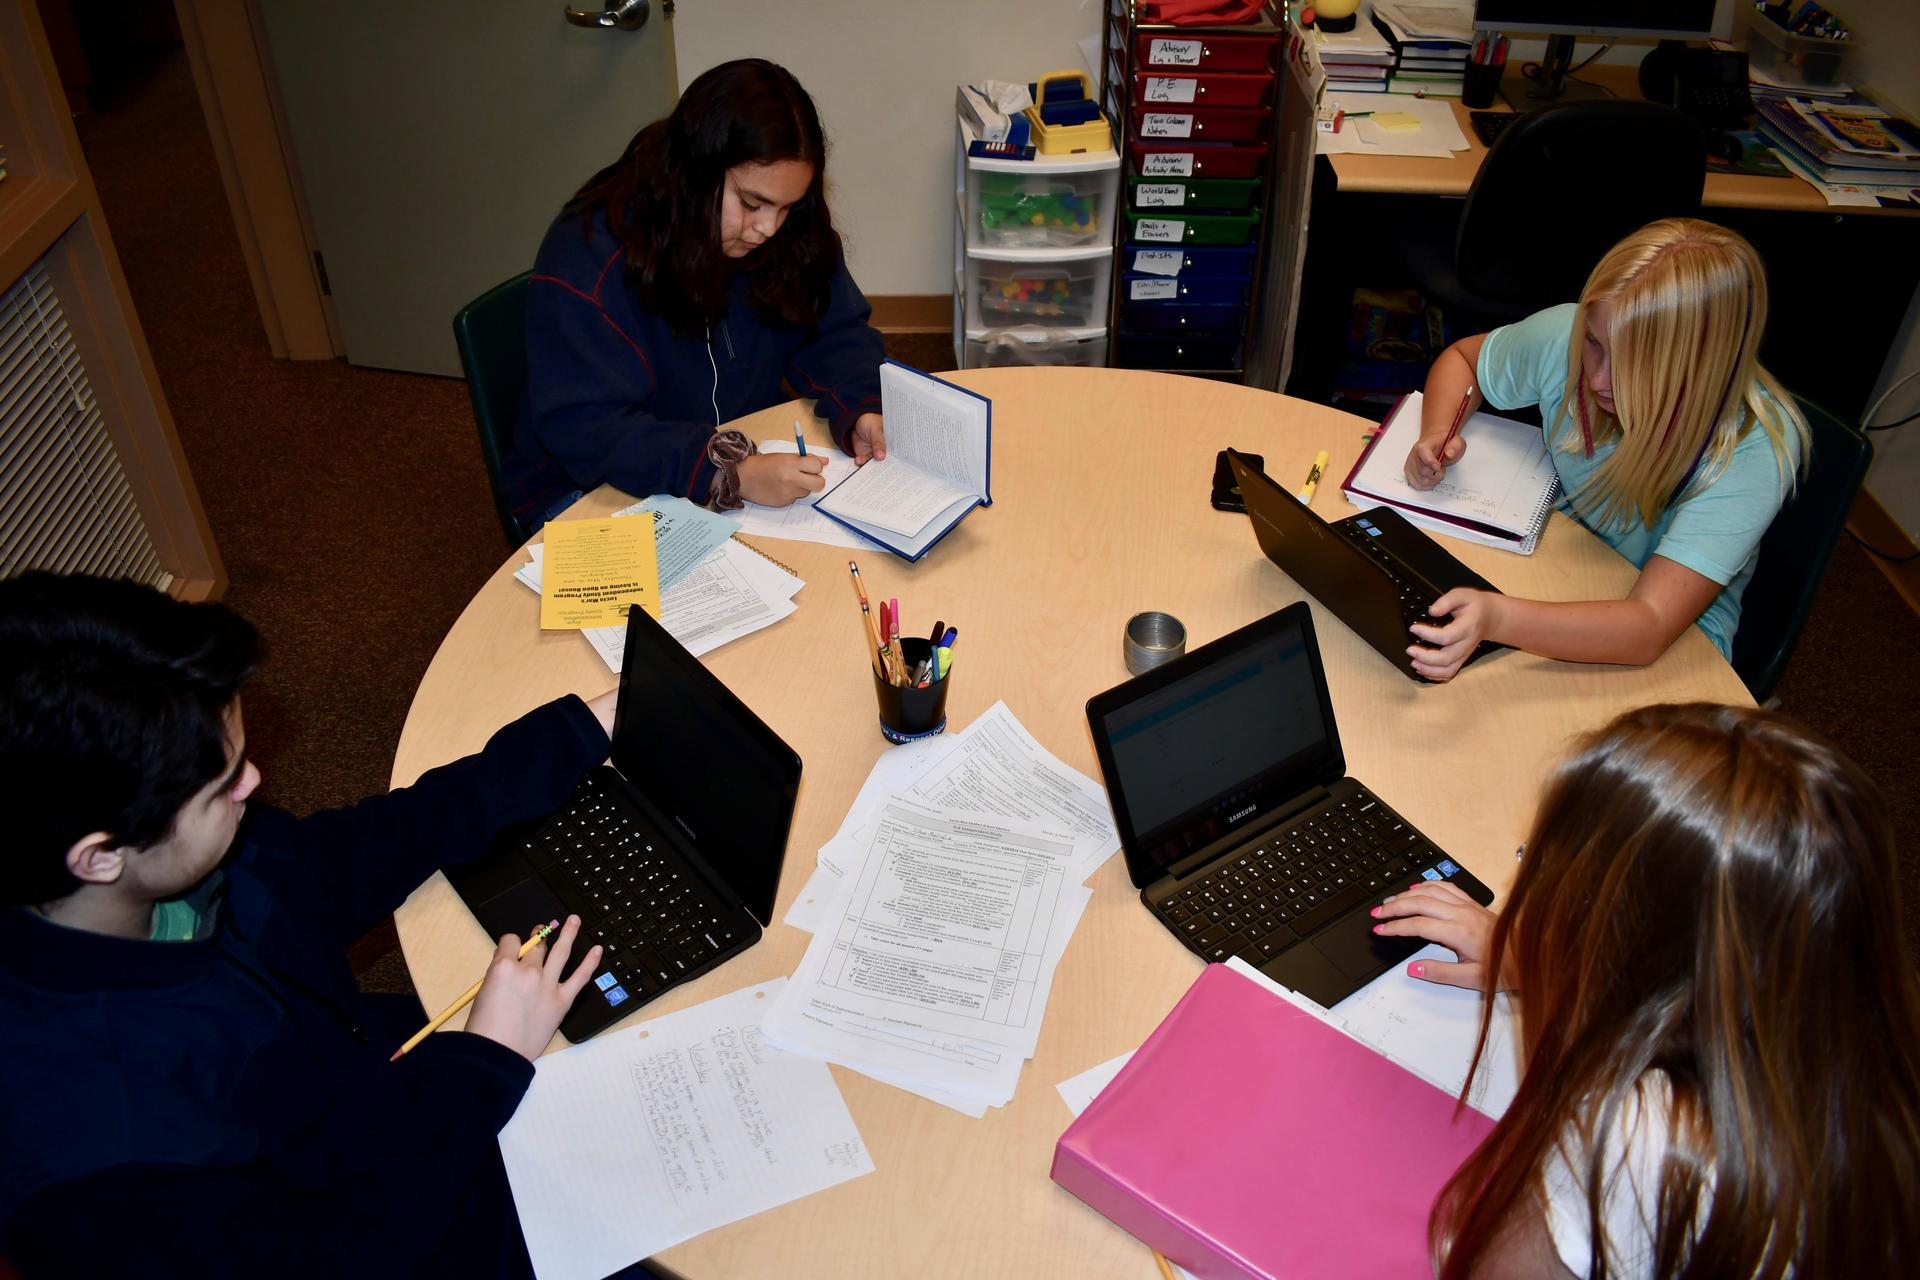 students working at a table